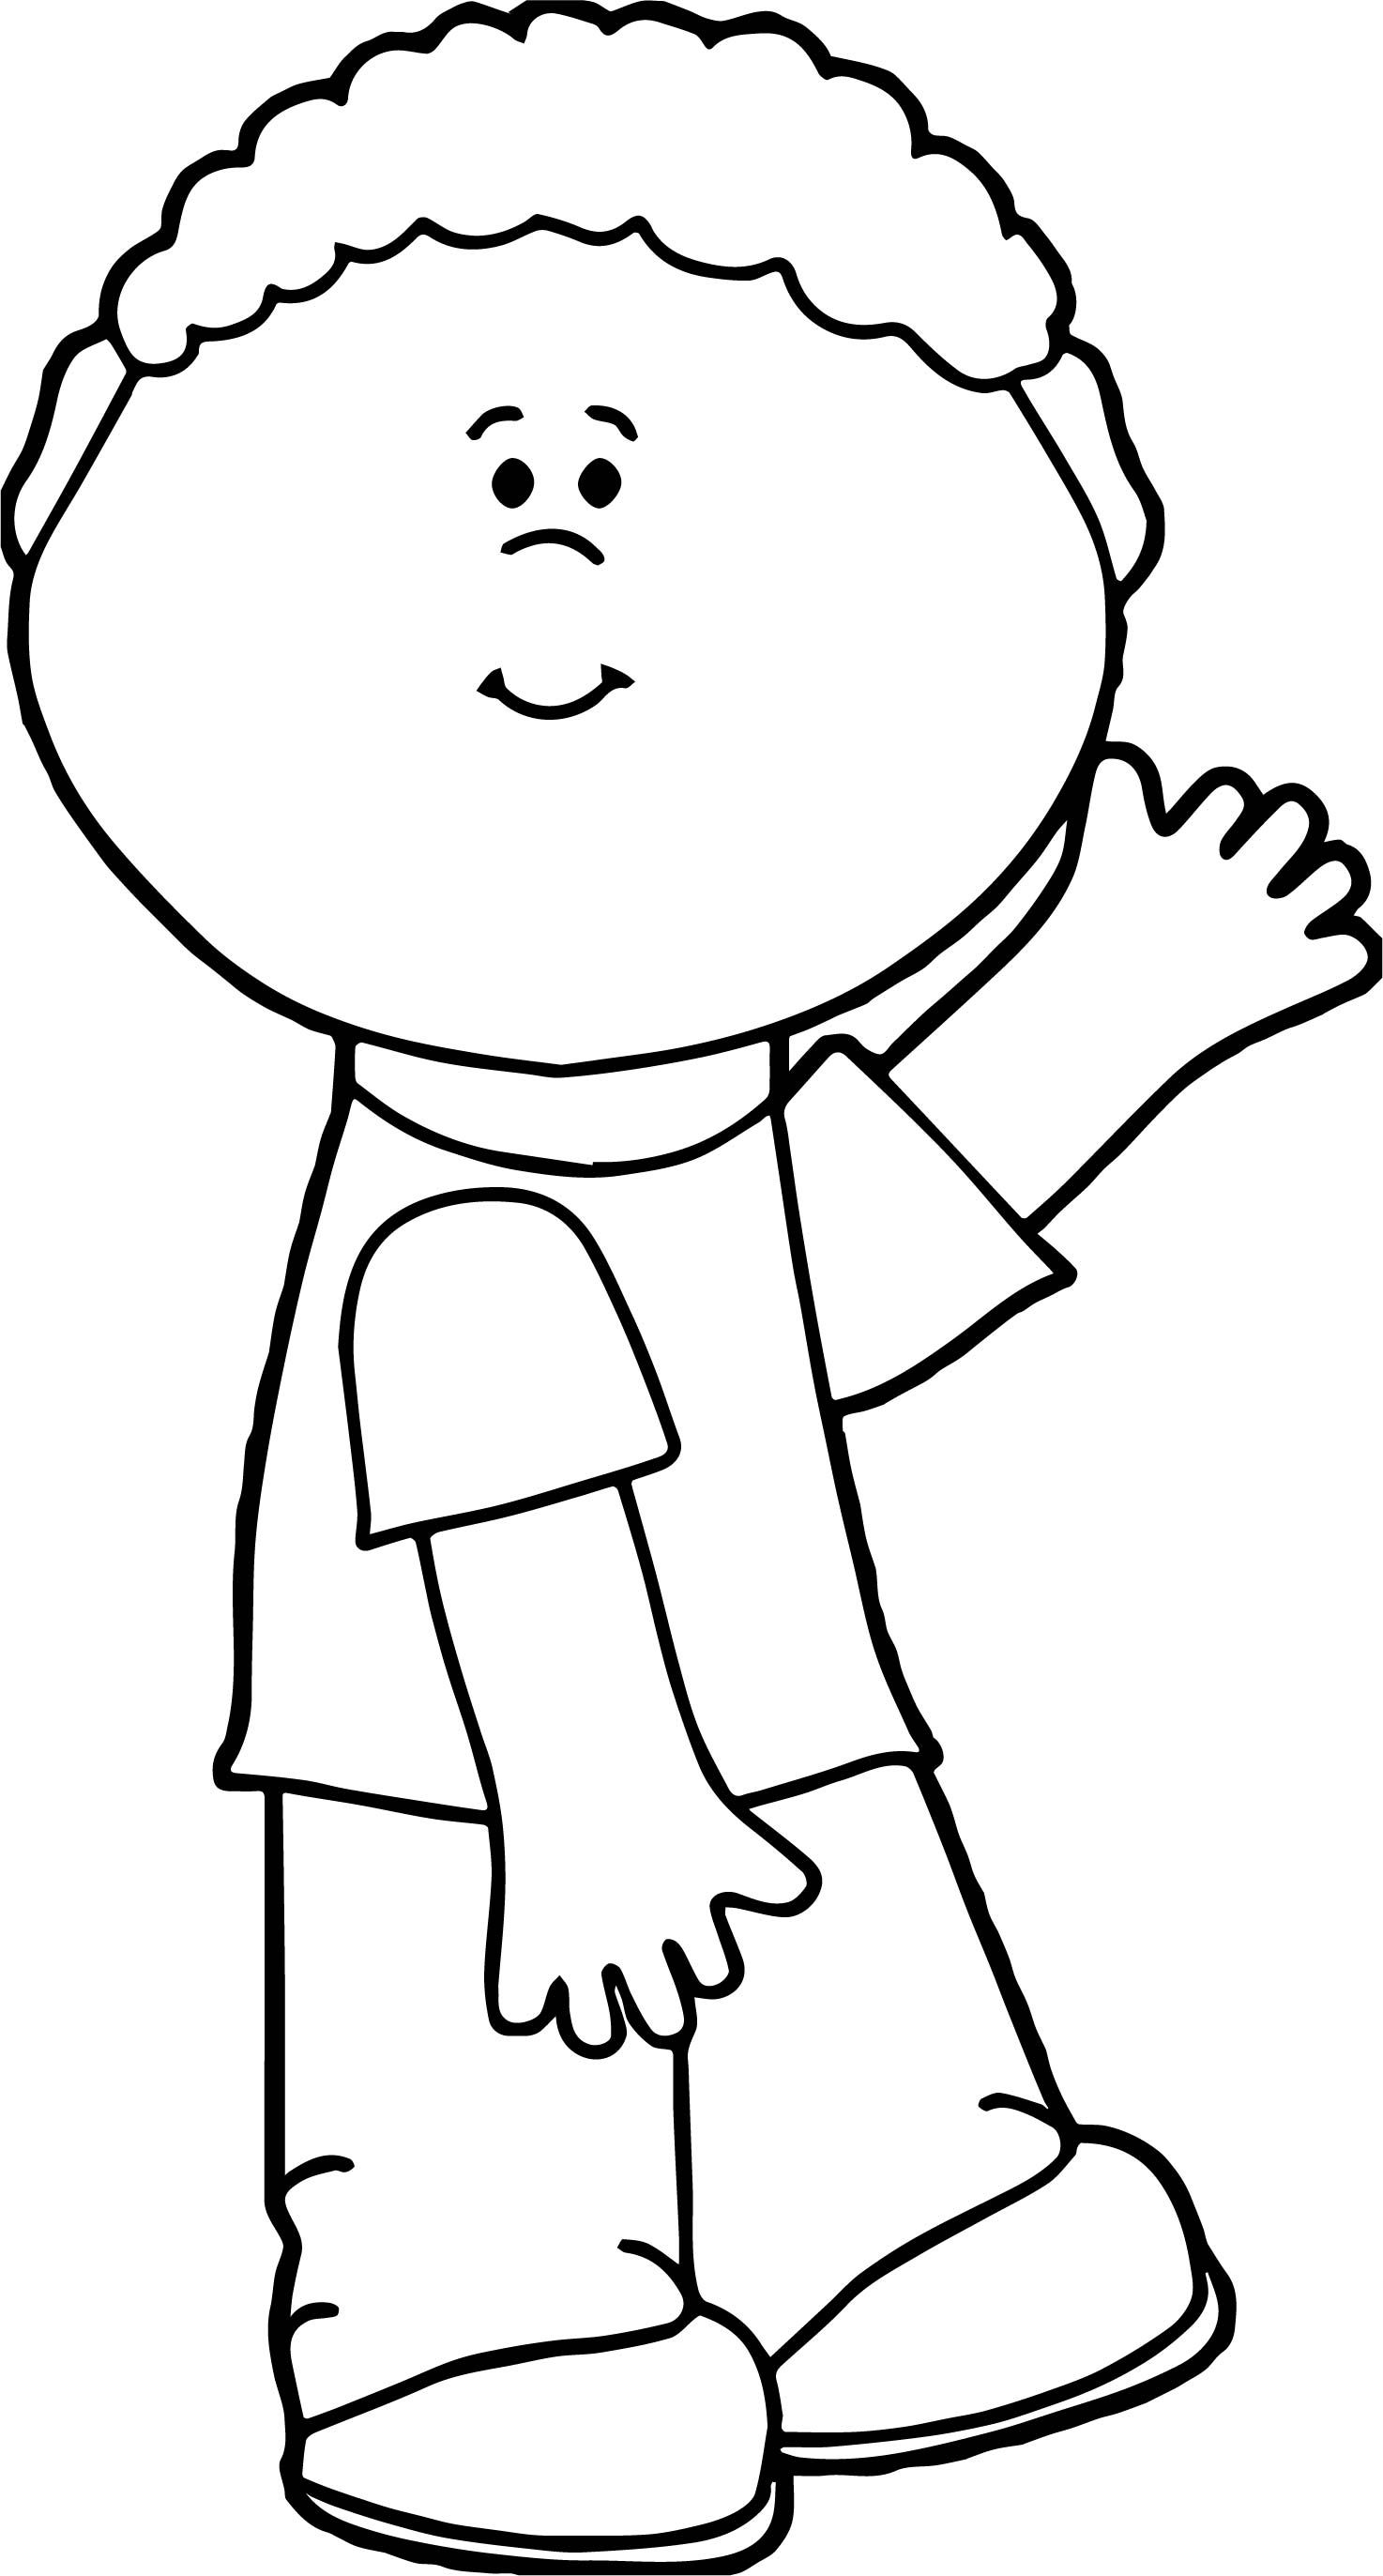 nice Boy Hi Coloring Page Coloring pages, Sunday school